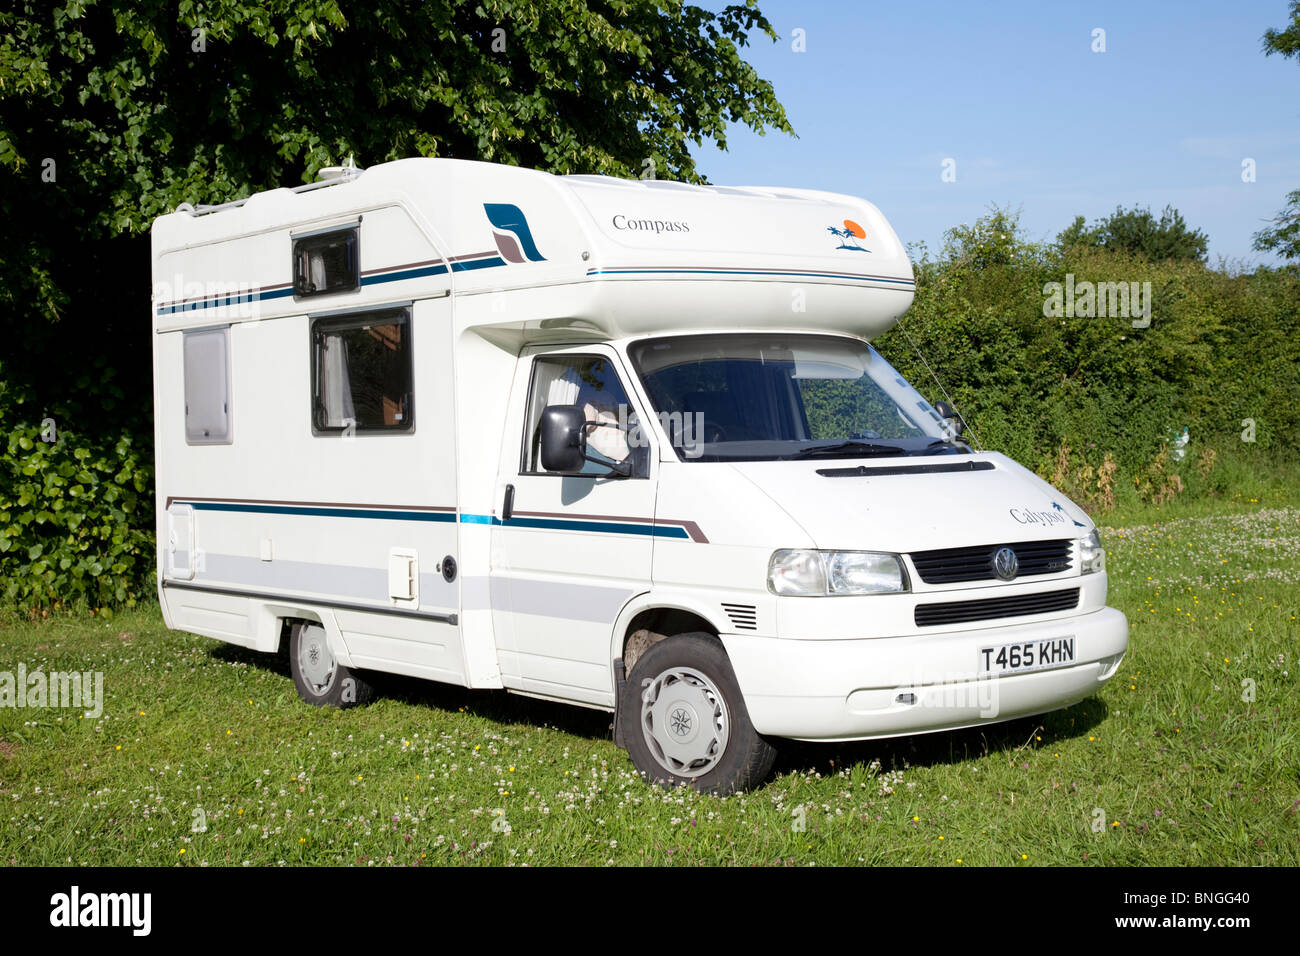 Compass Calypso motor home parked in field UK - Stock Image